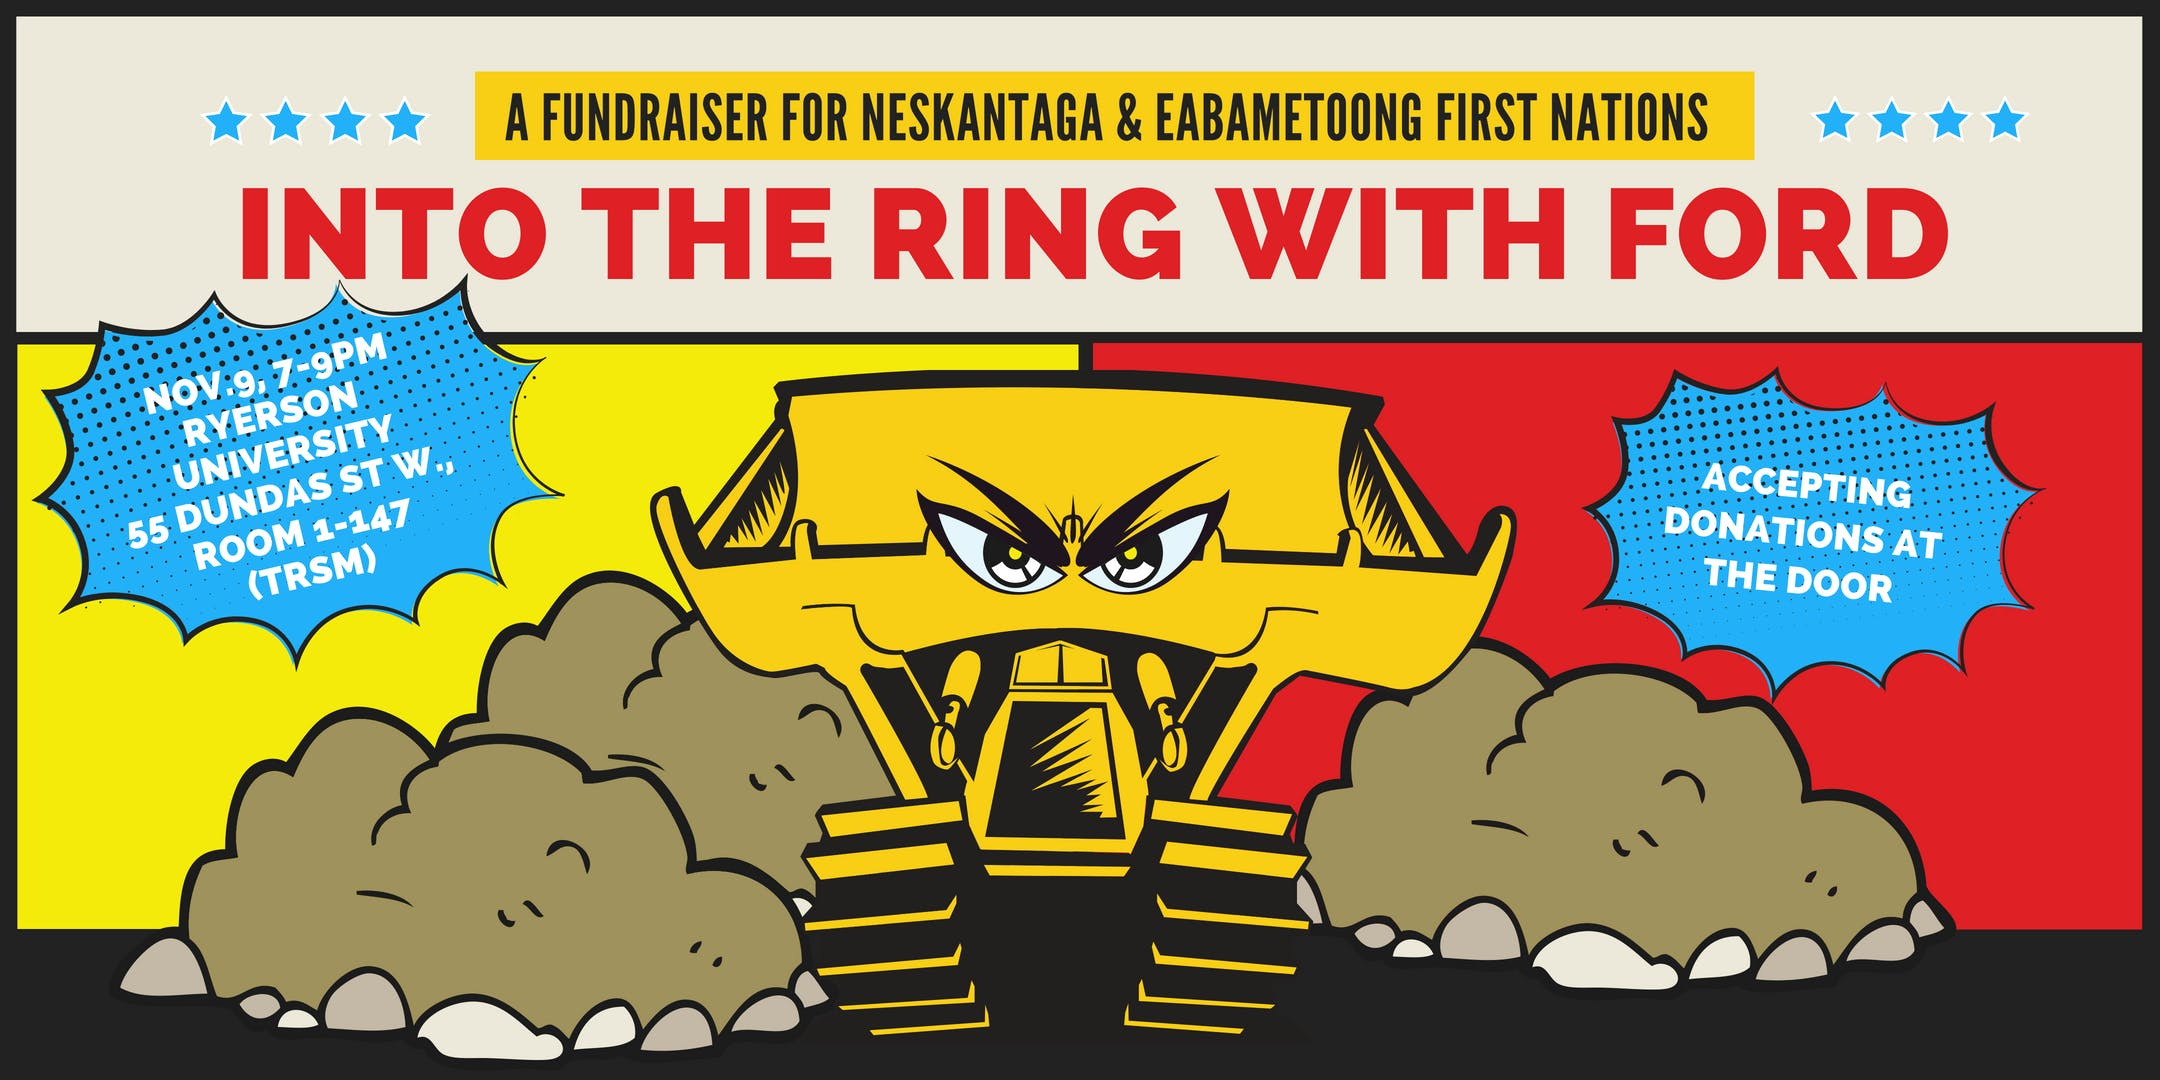 Into the Ring with Ford: A Fundraiser for the